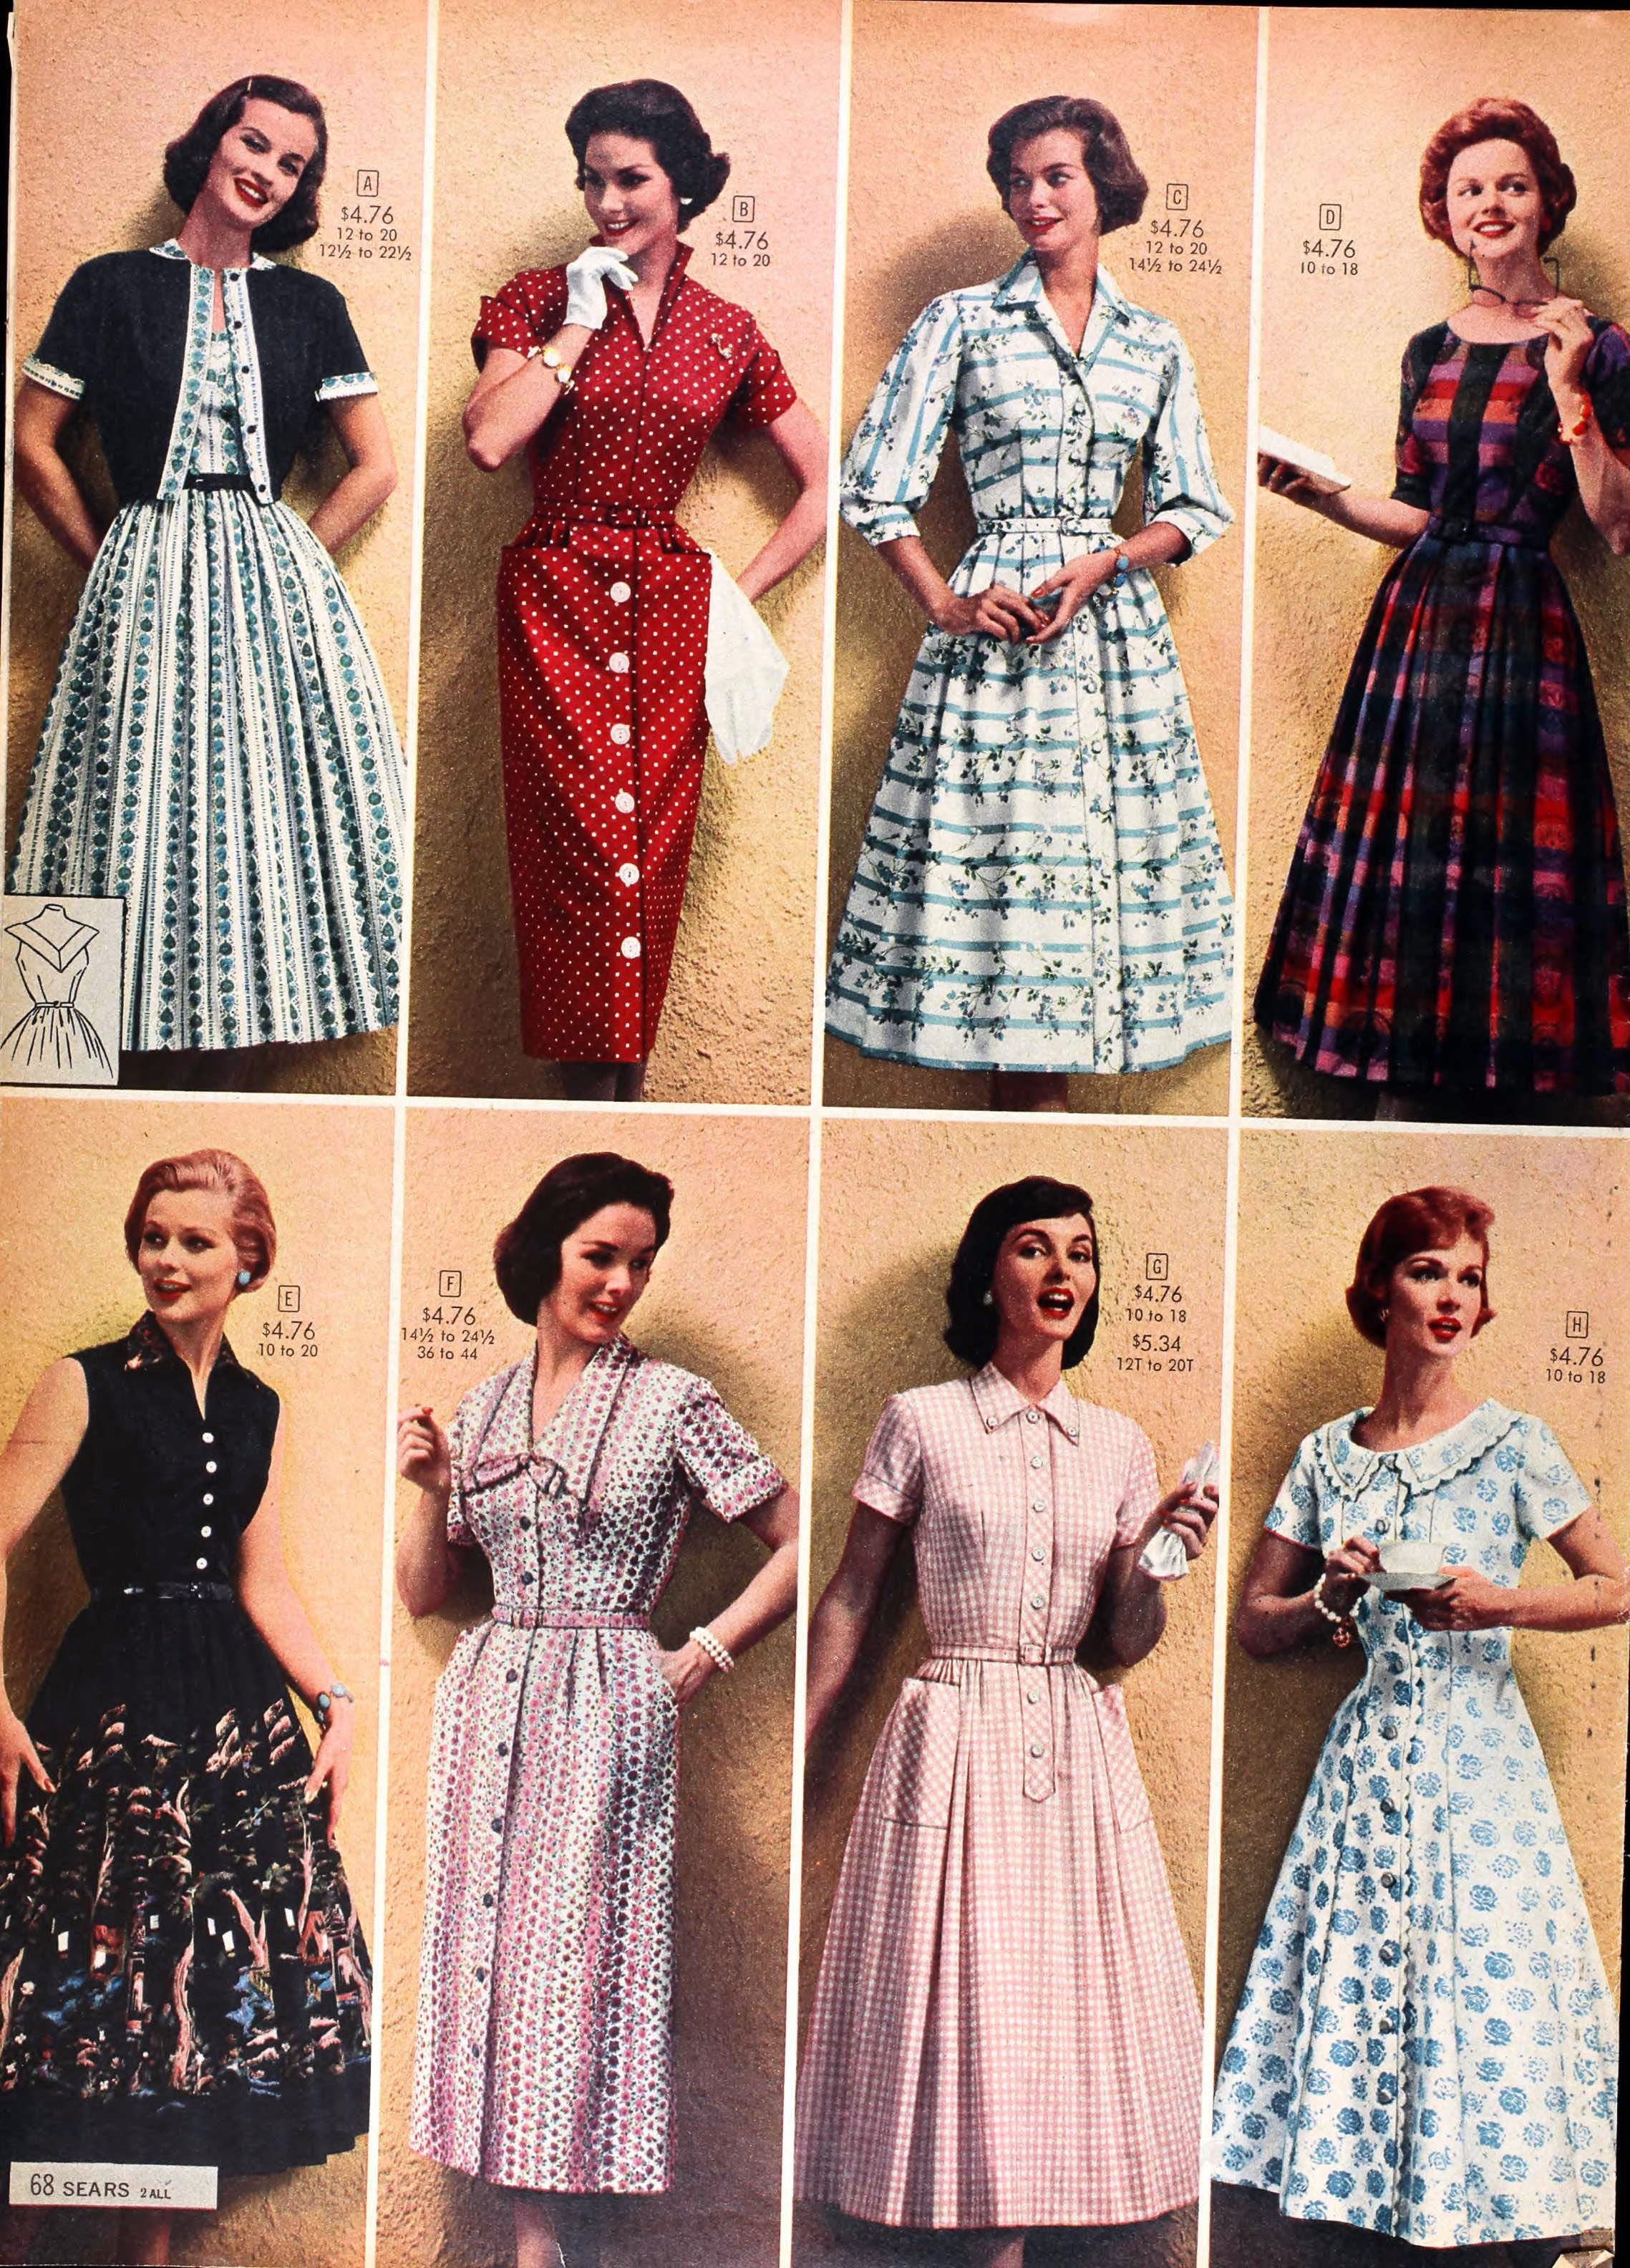 79f7c276667e Sears Catalog, Spring/Summer 1958 - Women's Dresses. Love vintage clothes!  <3